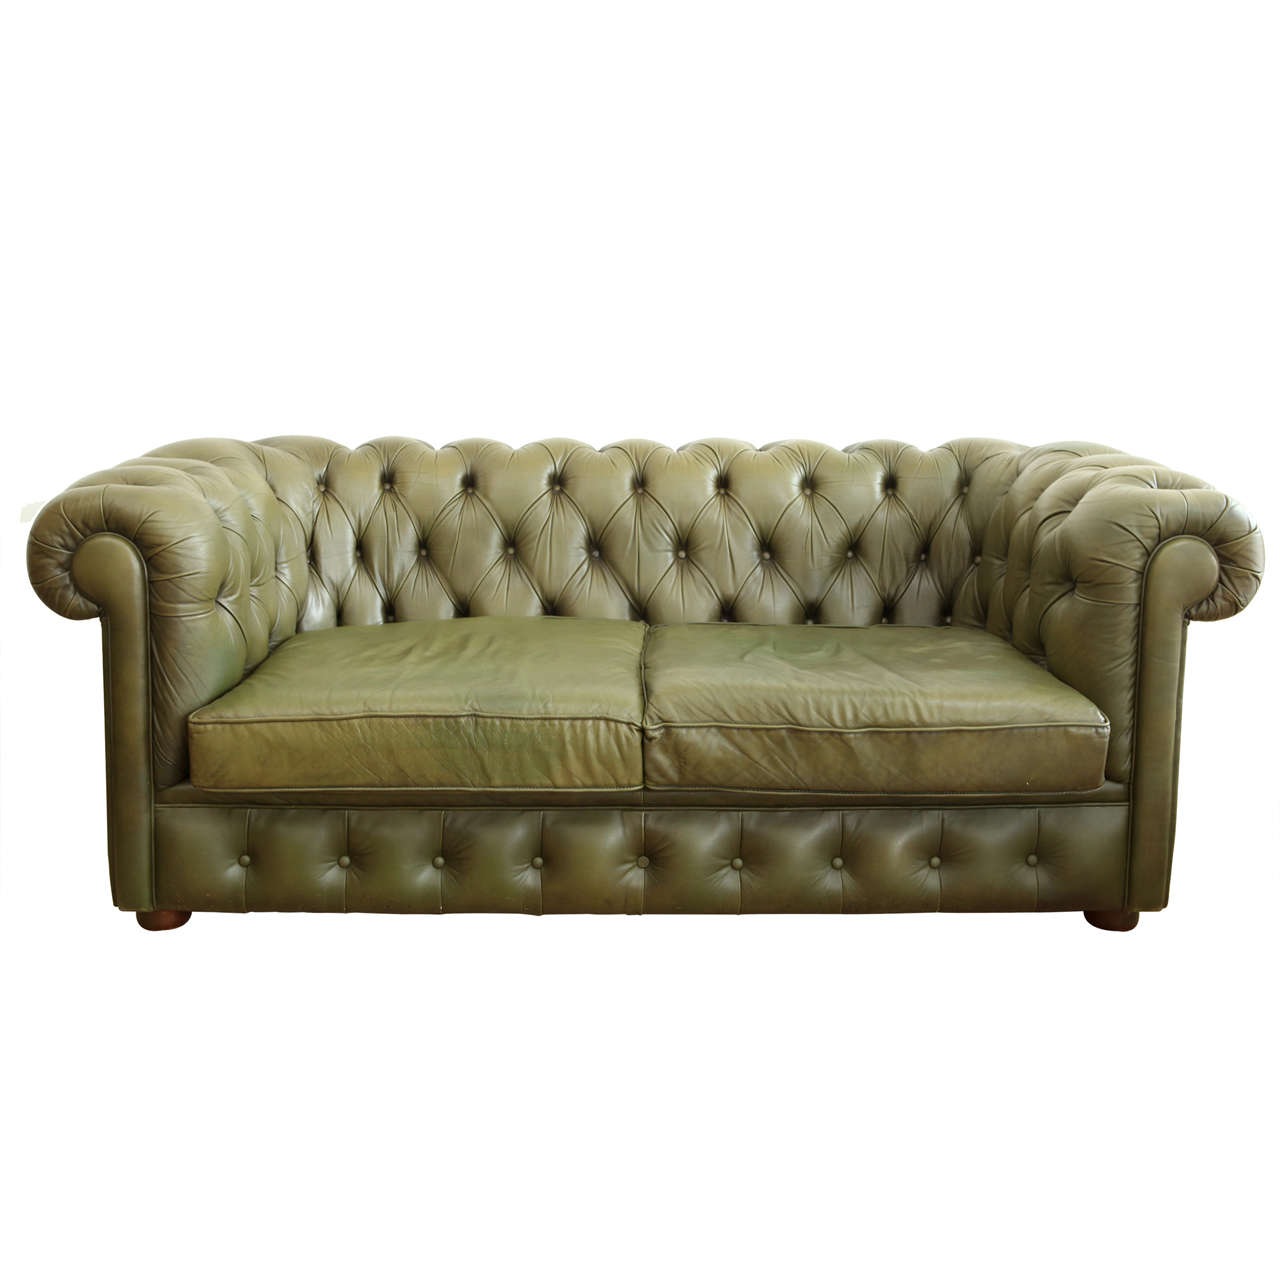 Leather Chesterfield Sofa at 1stdibs